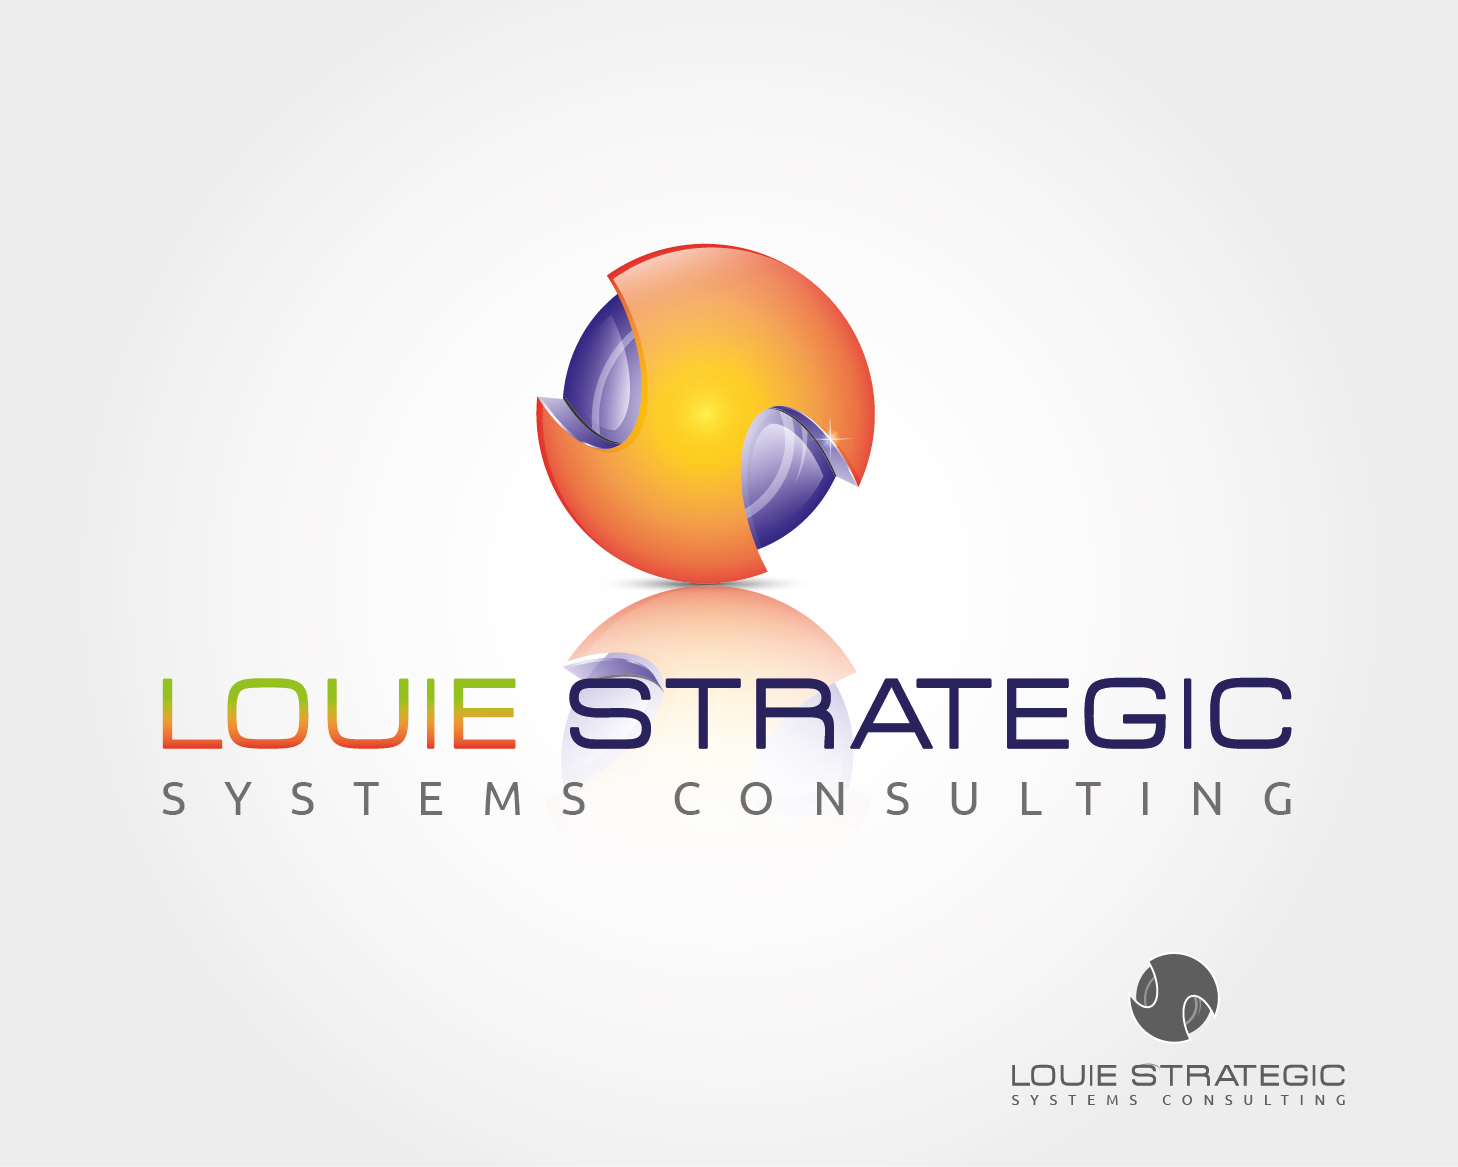 Logo Design by VENTSISLAV KOVACHEV - Entry No. 27 in the Logo Design Contest Artistic Logo Design for Louie Strategic Systems Consulting.